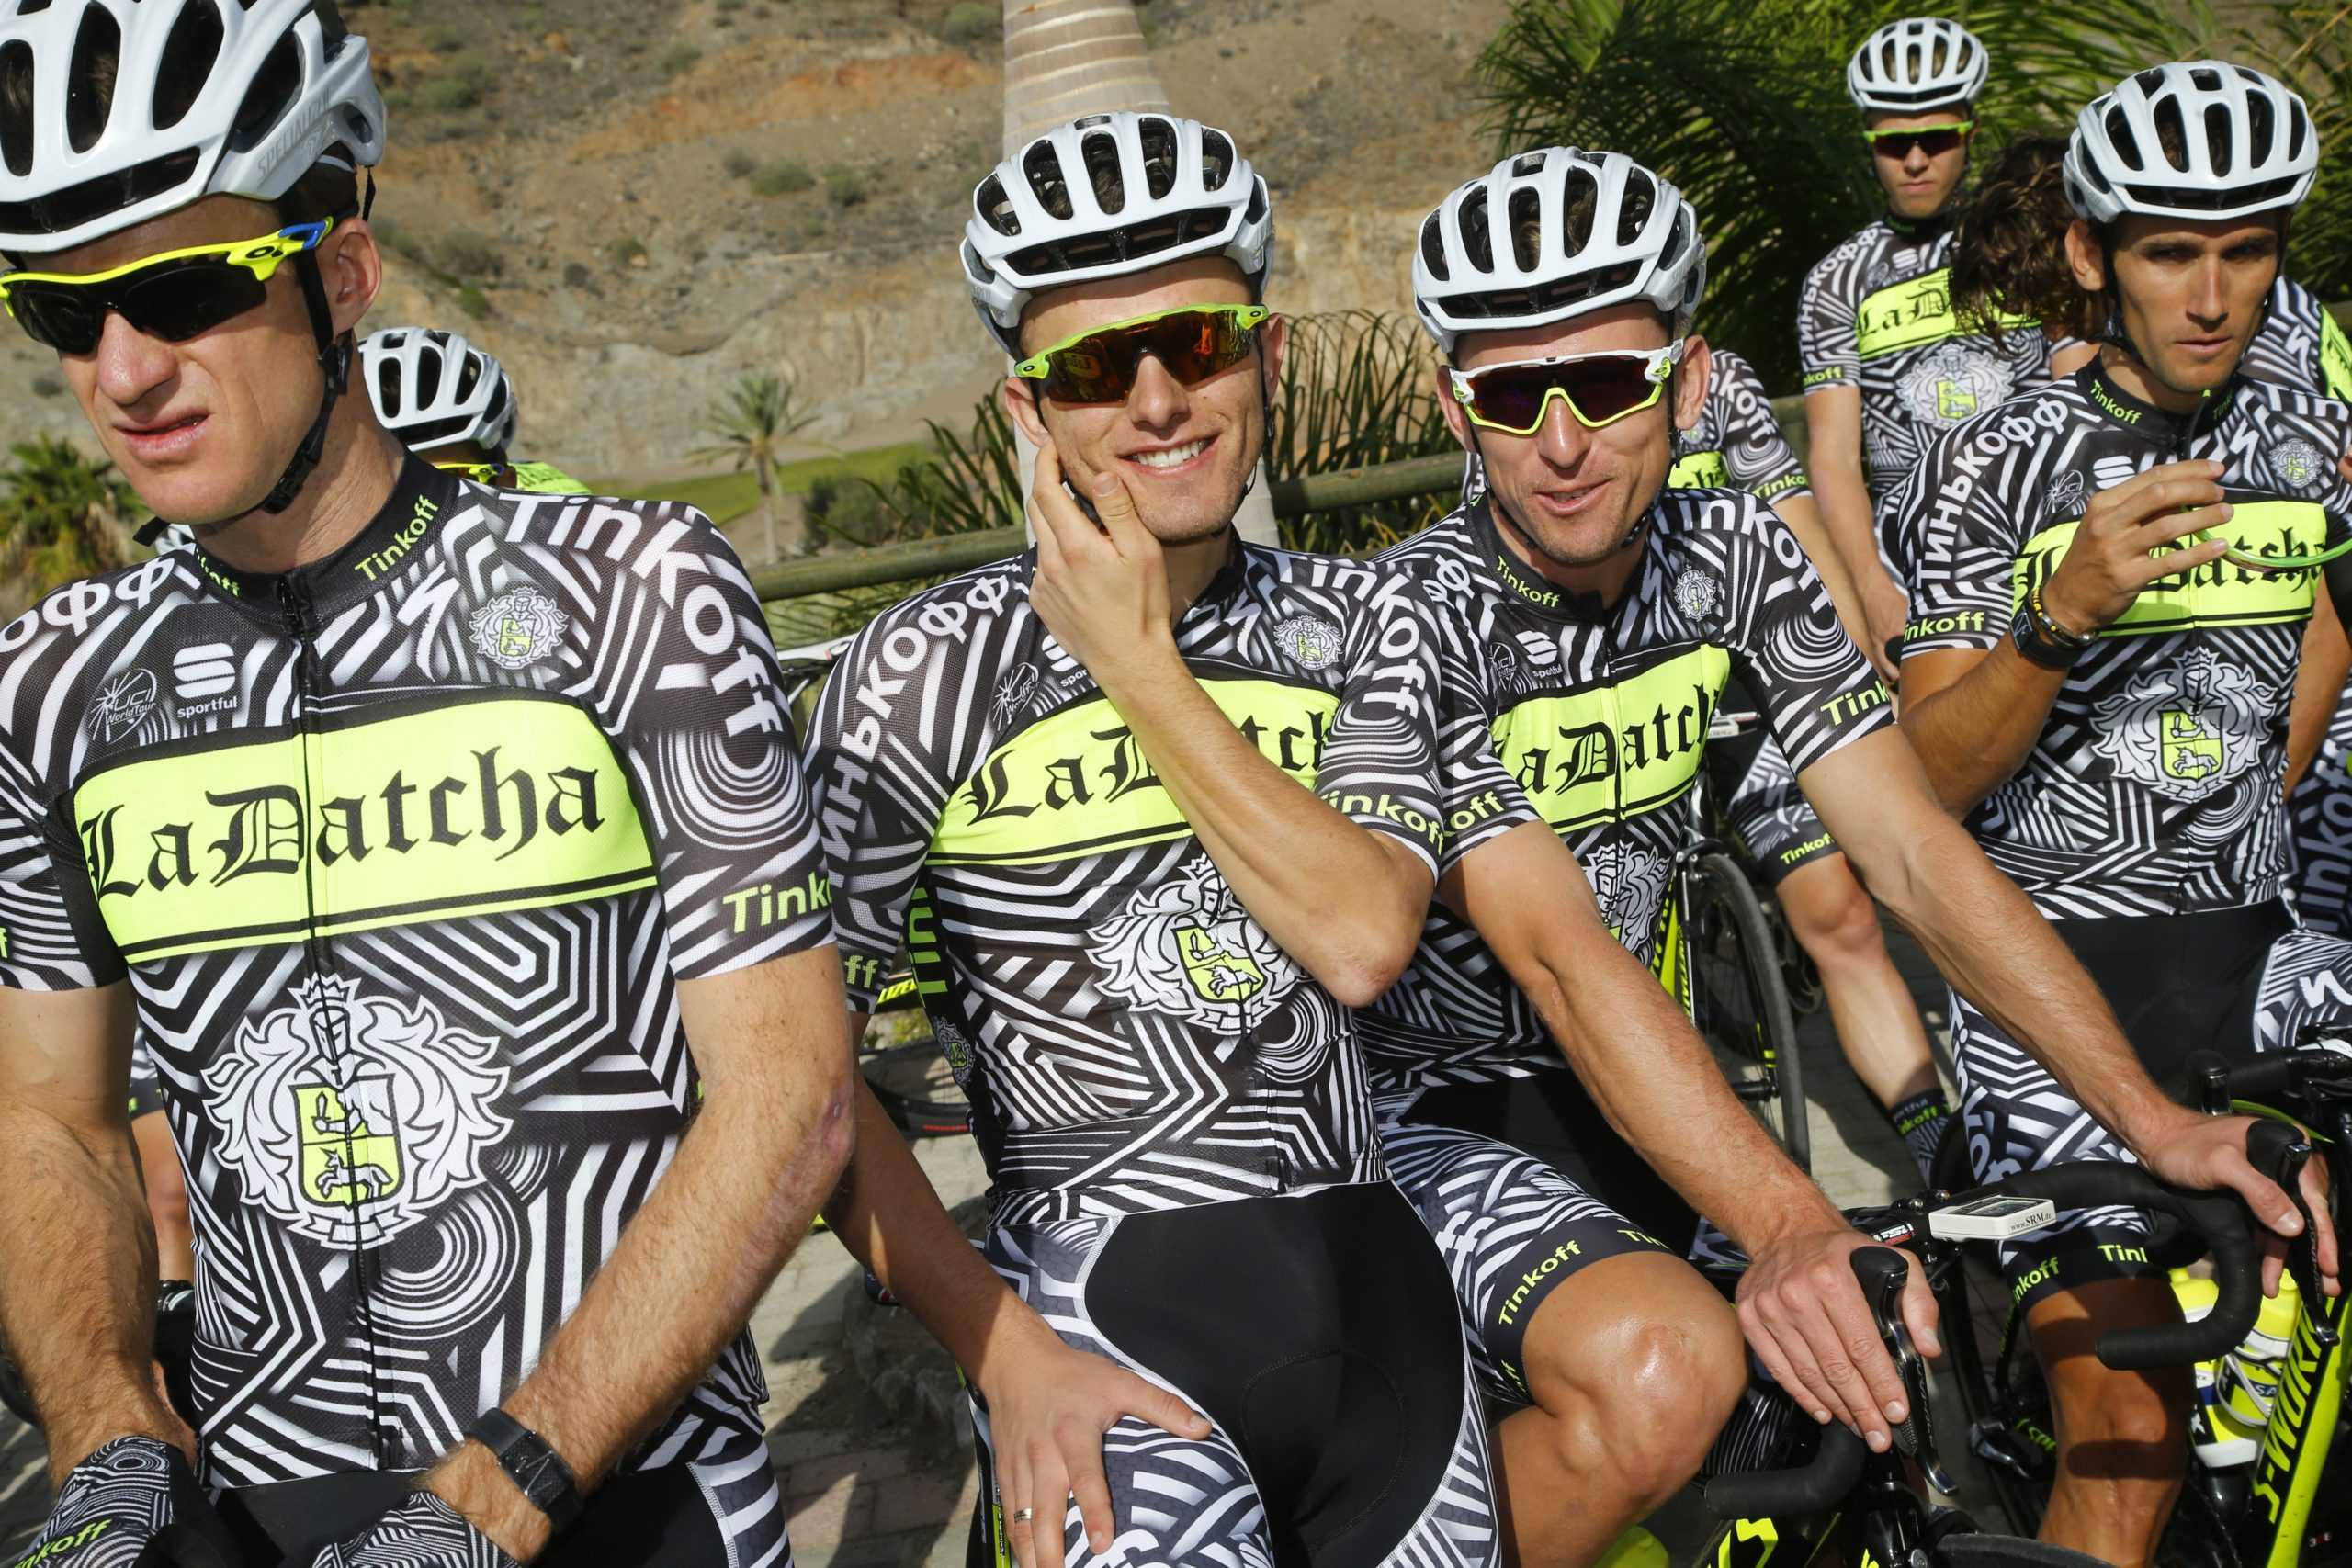 The limited winter training camp kit for Tinkoff, the words La Dutcha is in place of the owner and Olegs surname, Tinkoff. It refers to his second home, a chalet in the French Alps.